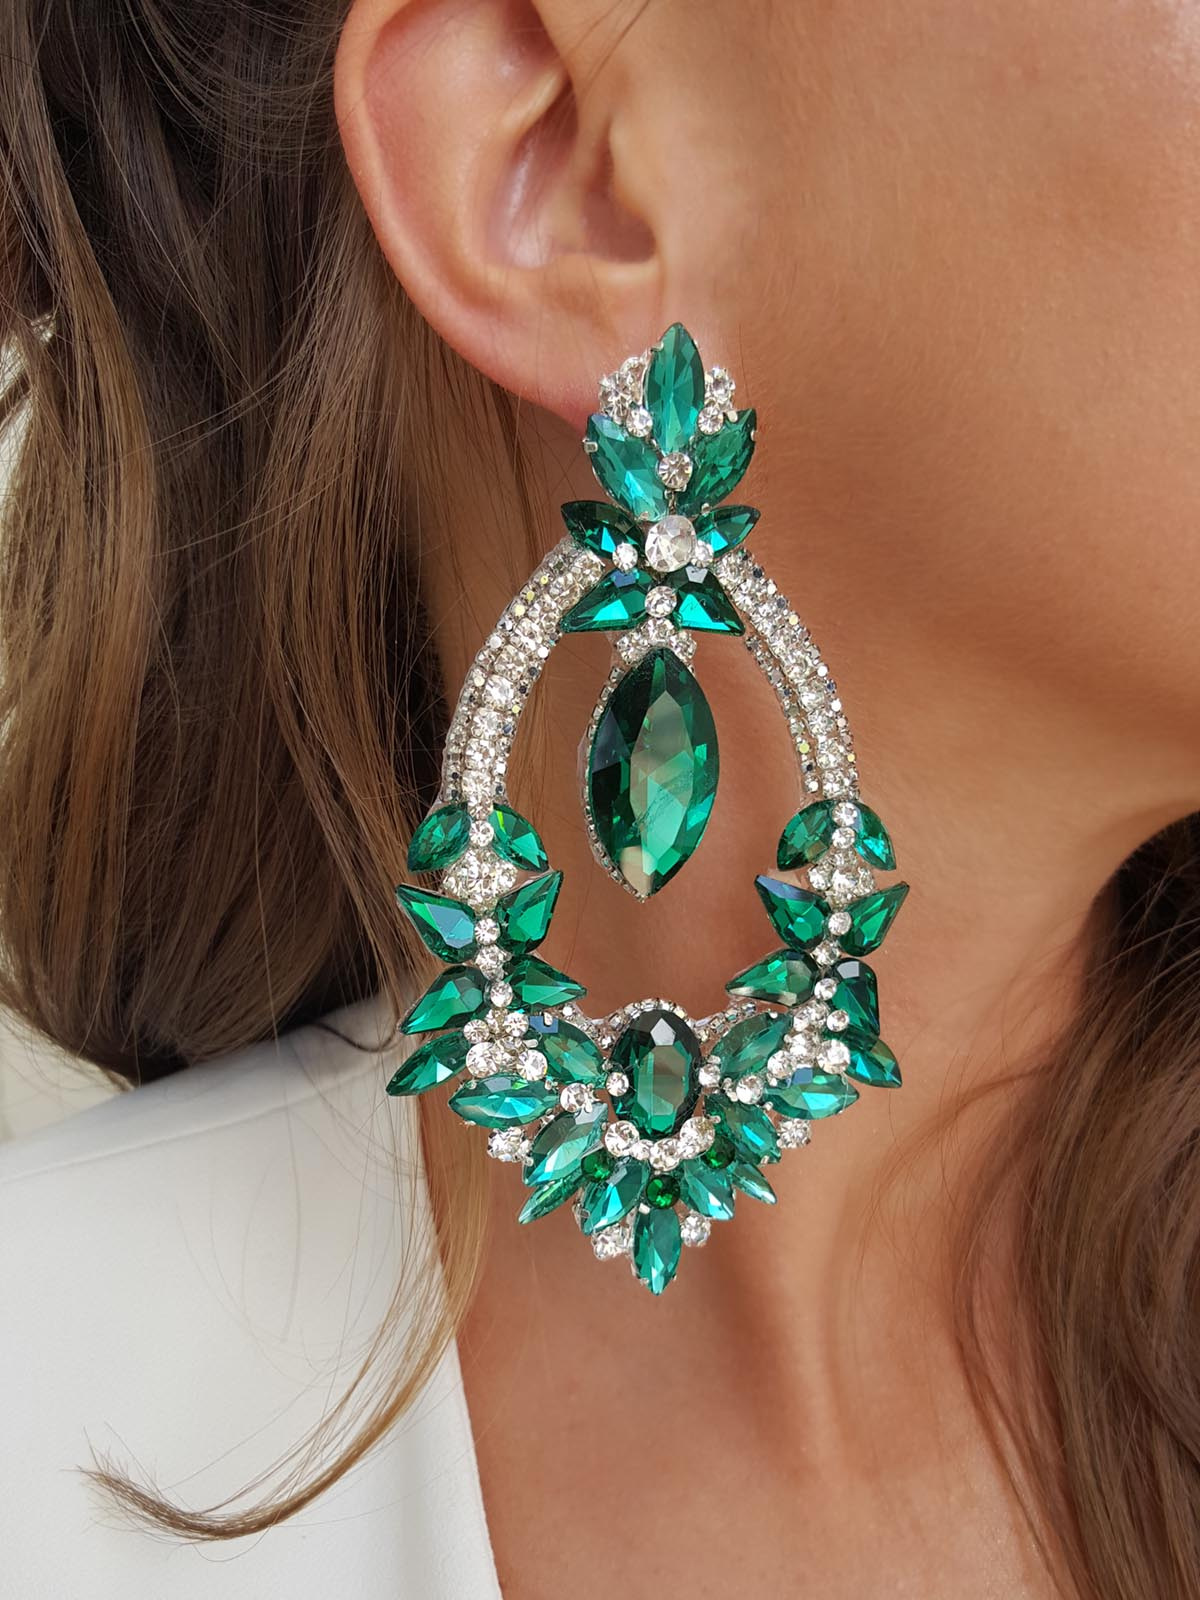 Earrings Coctails 148a